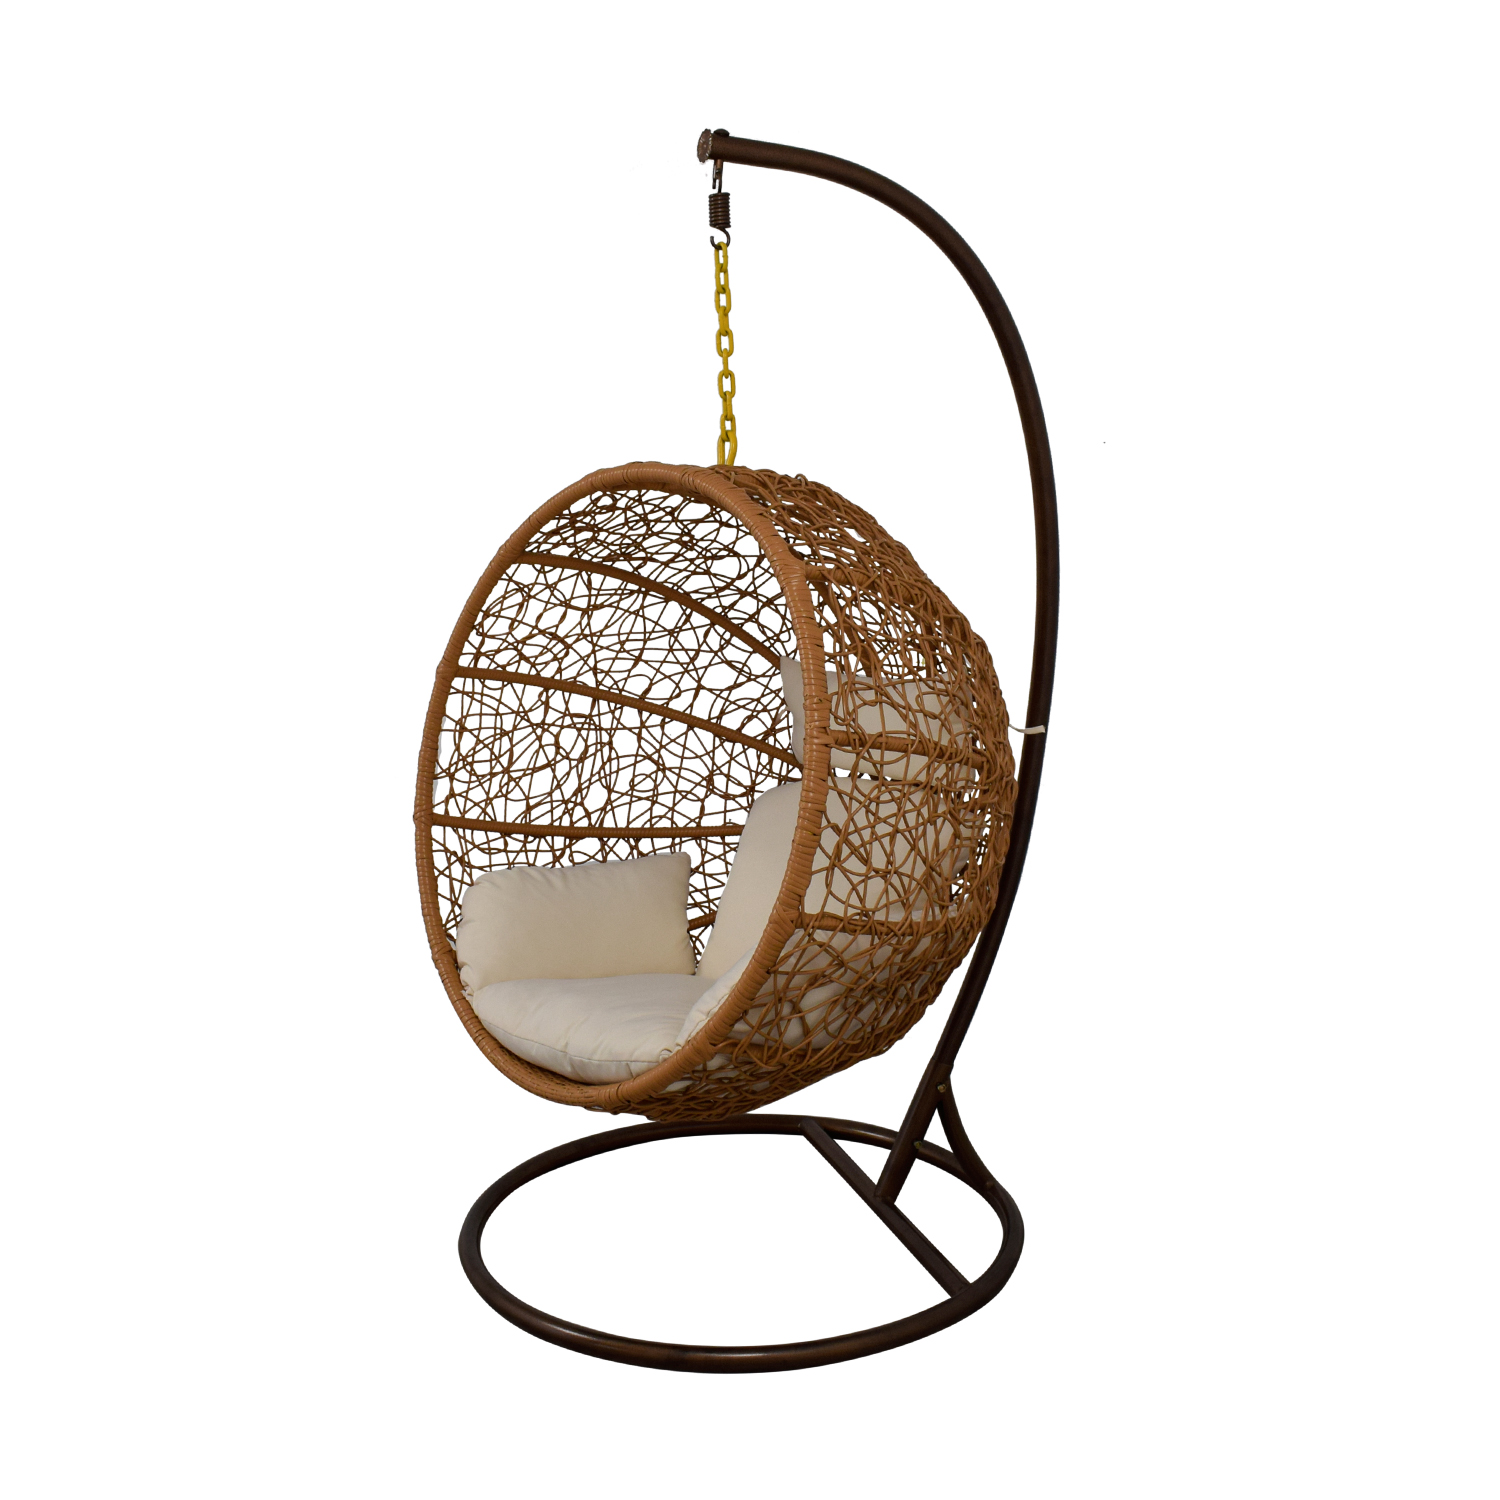 Zolo Zolo Outdoor Wicker Hanging Lounge Chair dimensions